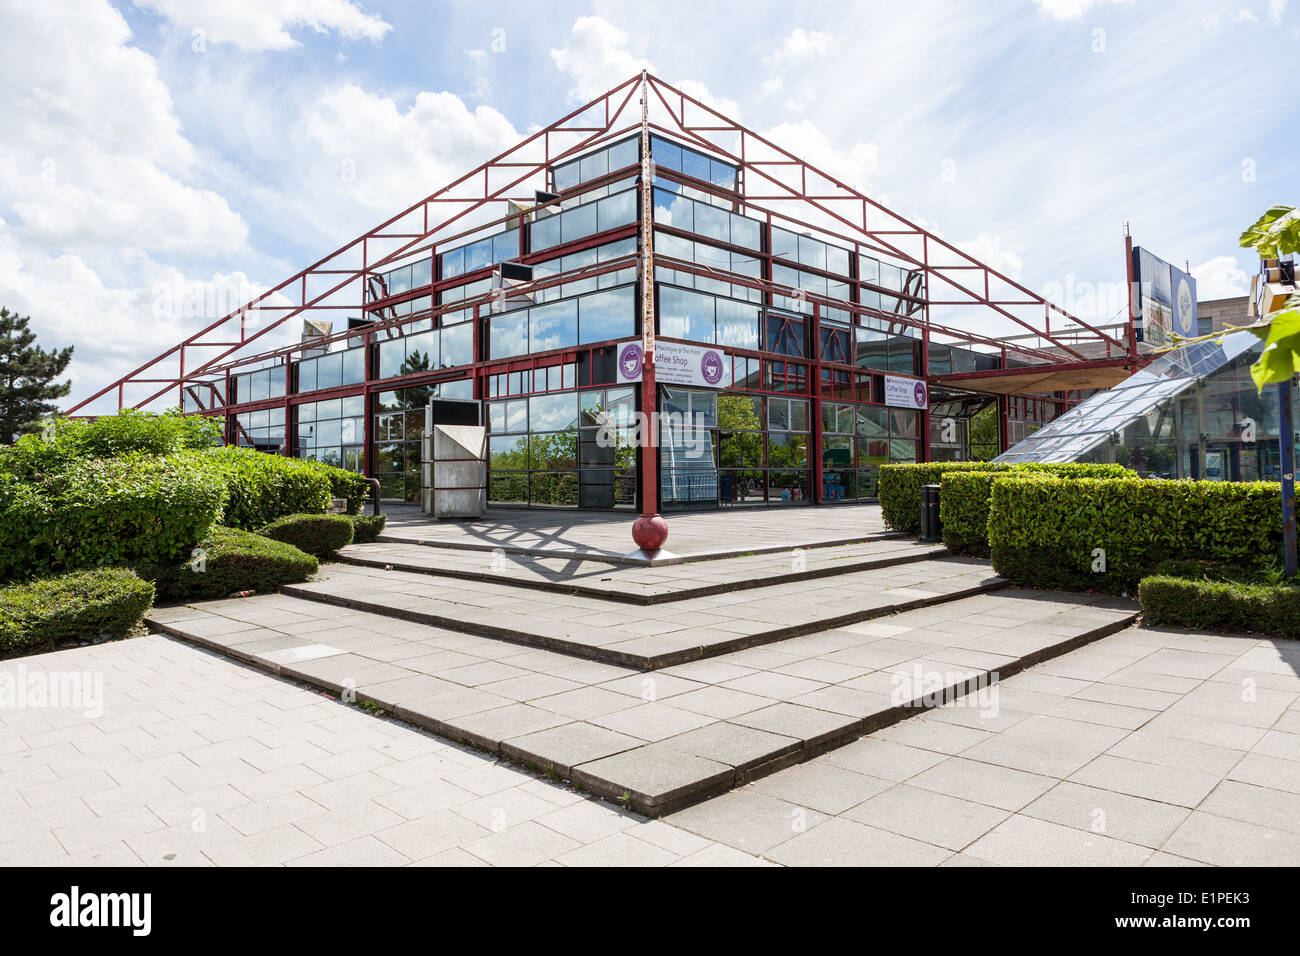 The Point, in Milton Keynes, was Britain's first multiplex cinema. - Stock Image